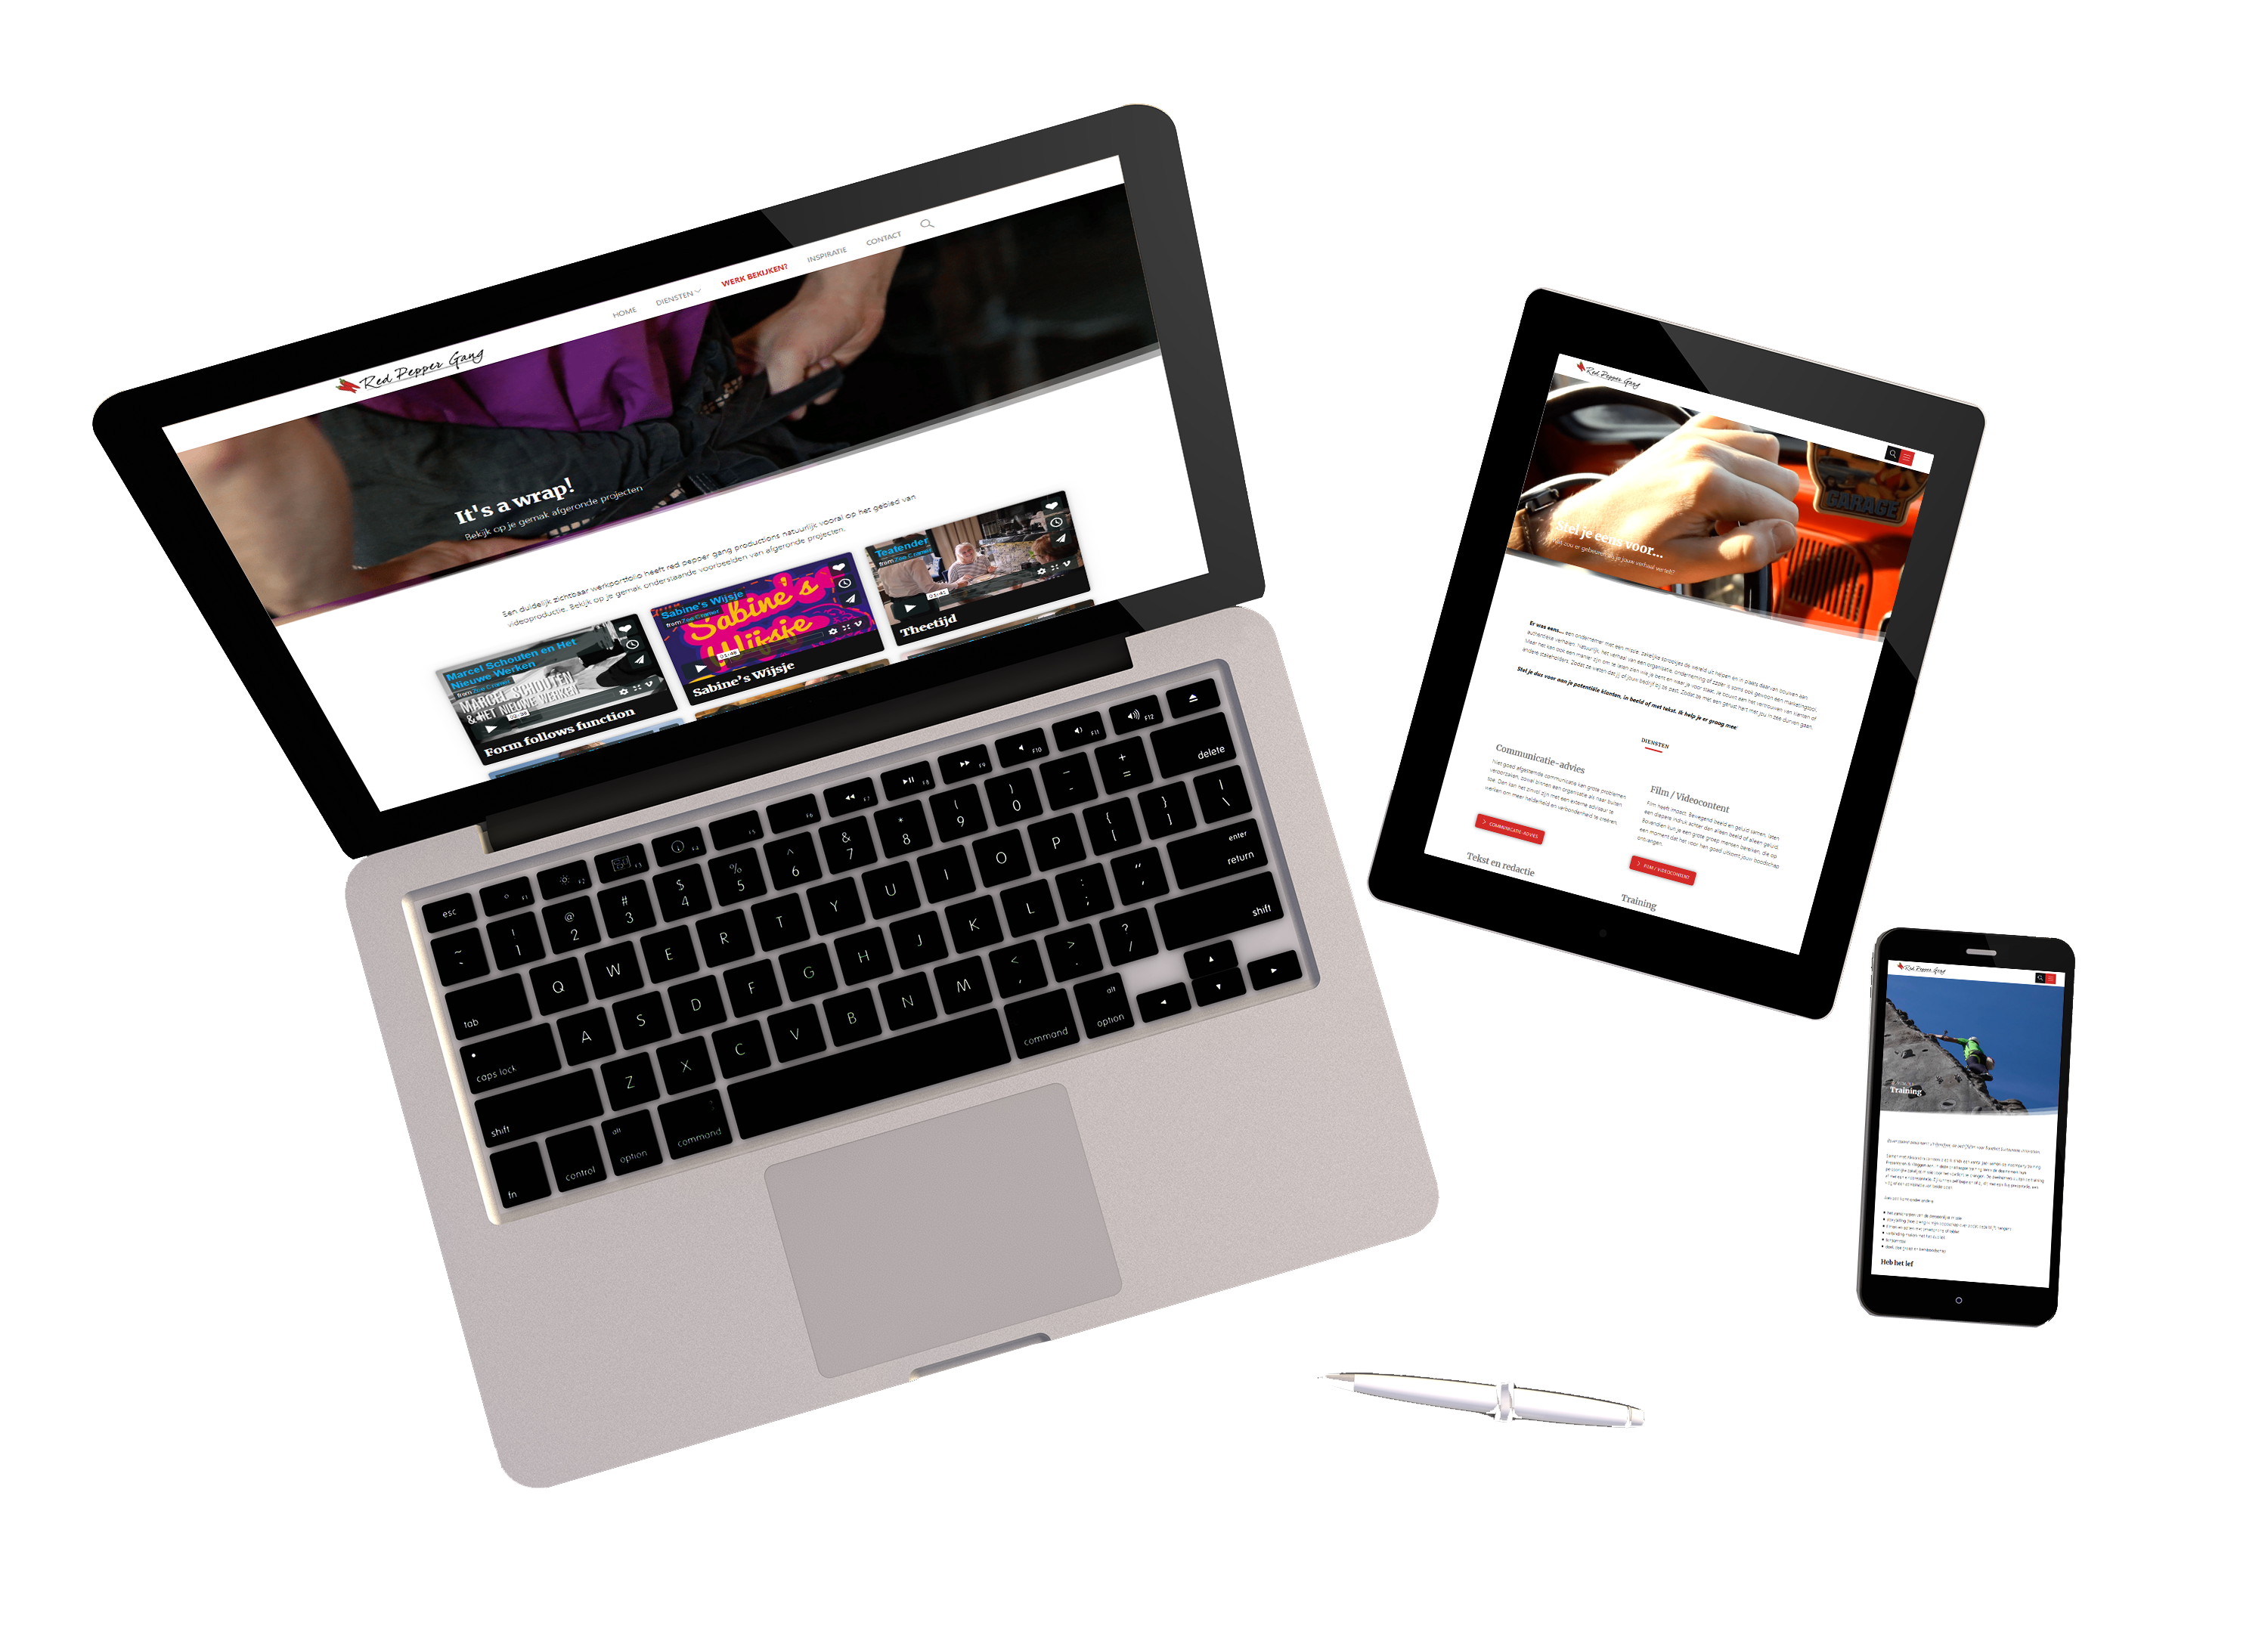 The responsive WordPress theme for Red Pepper Gang shown on 3 Apple devices (iPhone, iPad and MacBook)